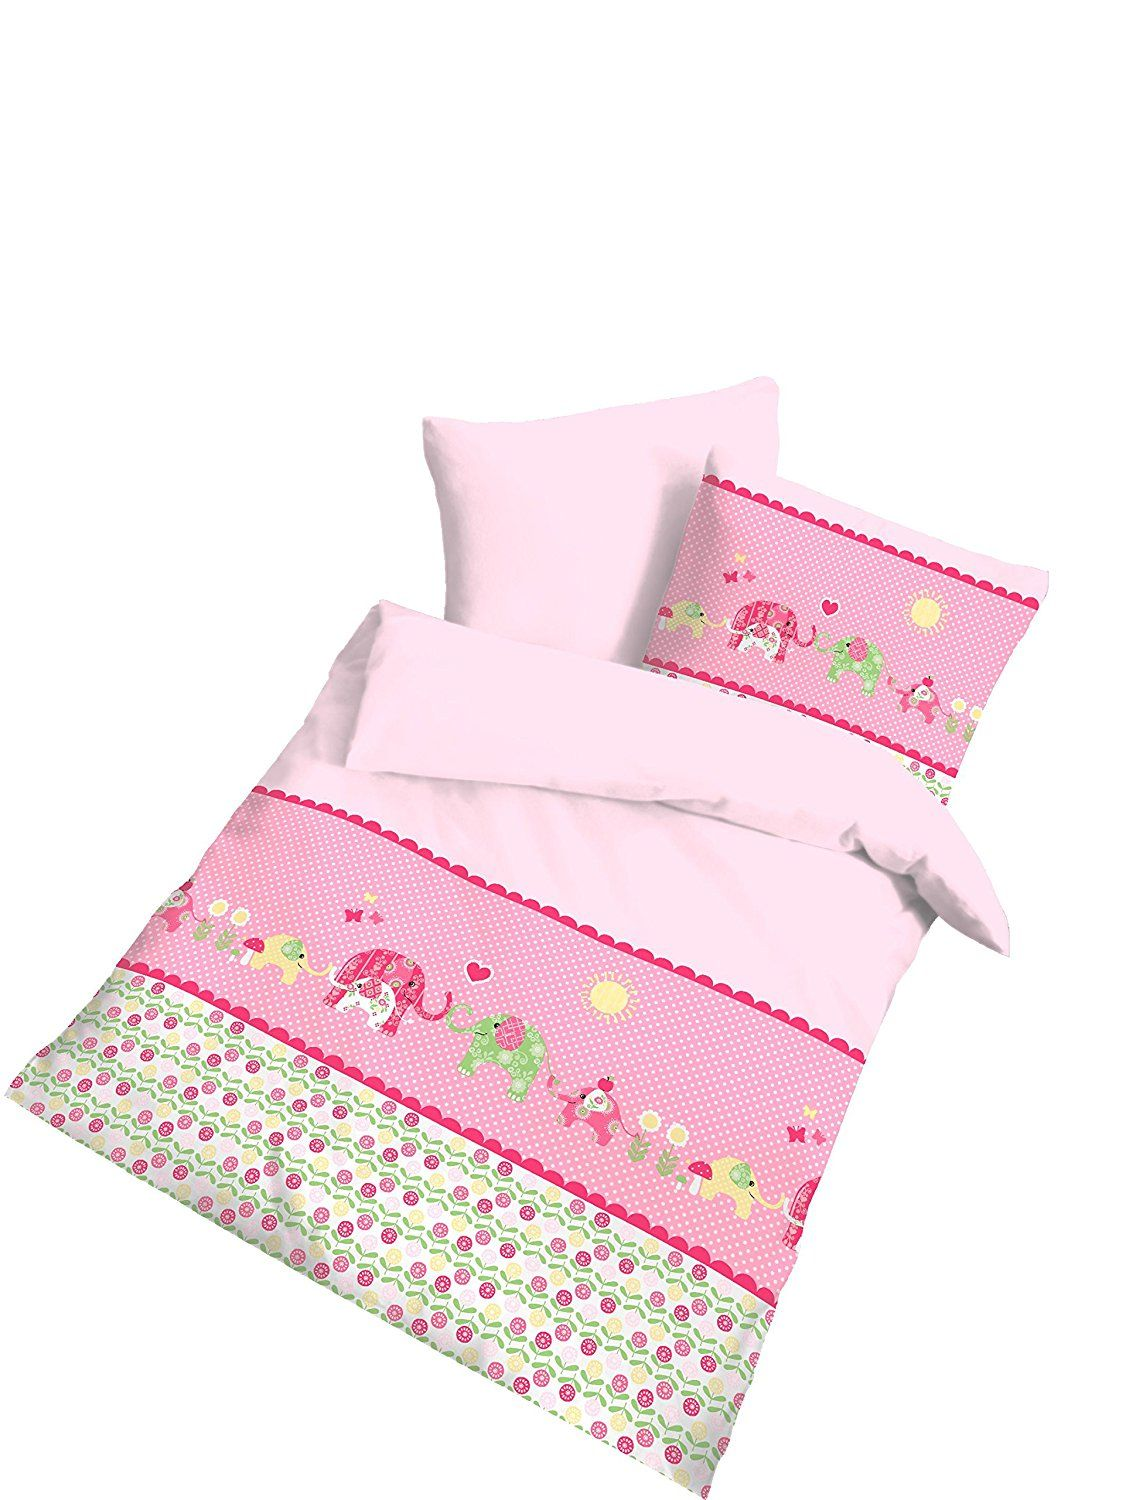 Renforce Baby Bettwasche Elefant Rosa Grosse 40x60 100 X 135 Cm